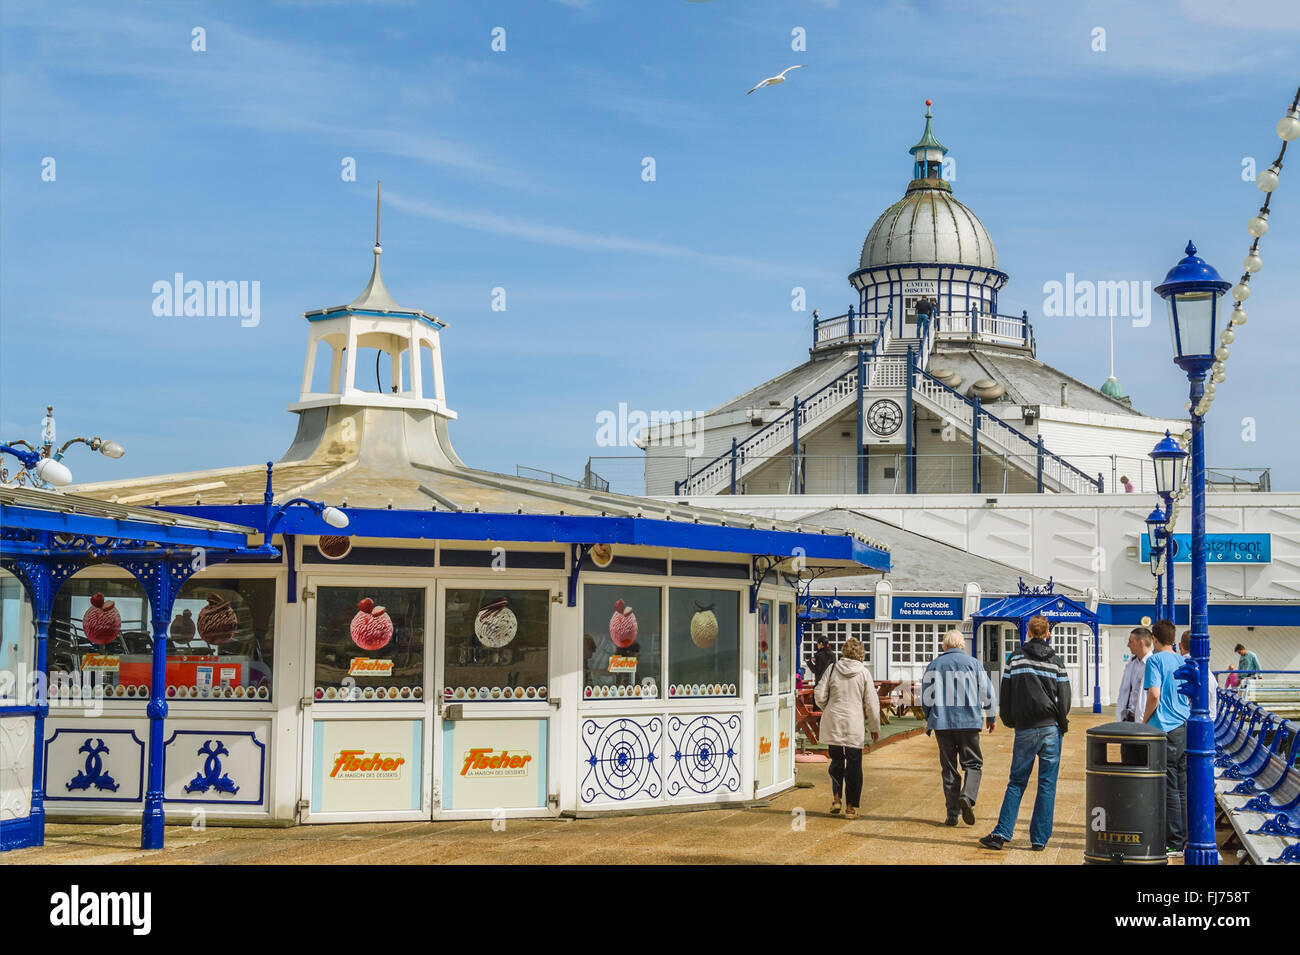 Historical Eastbourne Pier in East Sussex, South England | Historische Pier von  Eastbourne, East Sussex, Suedengland Stock Photo